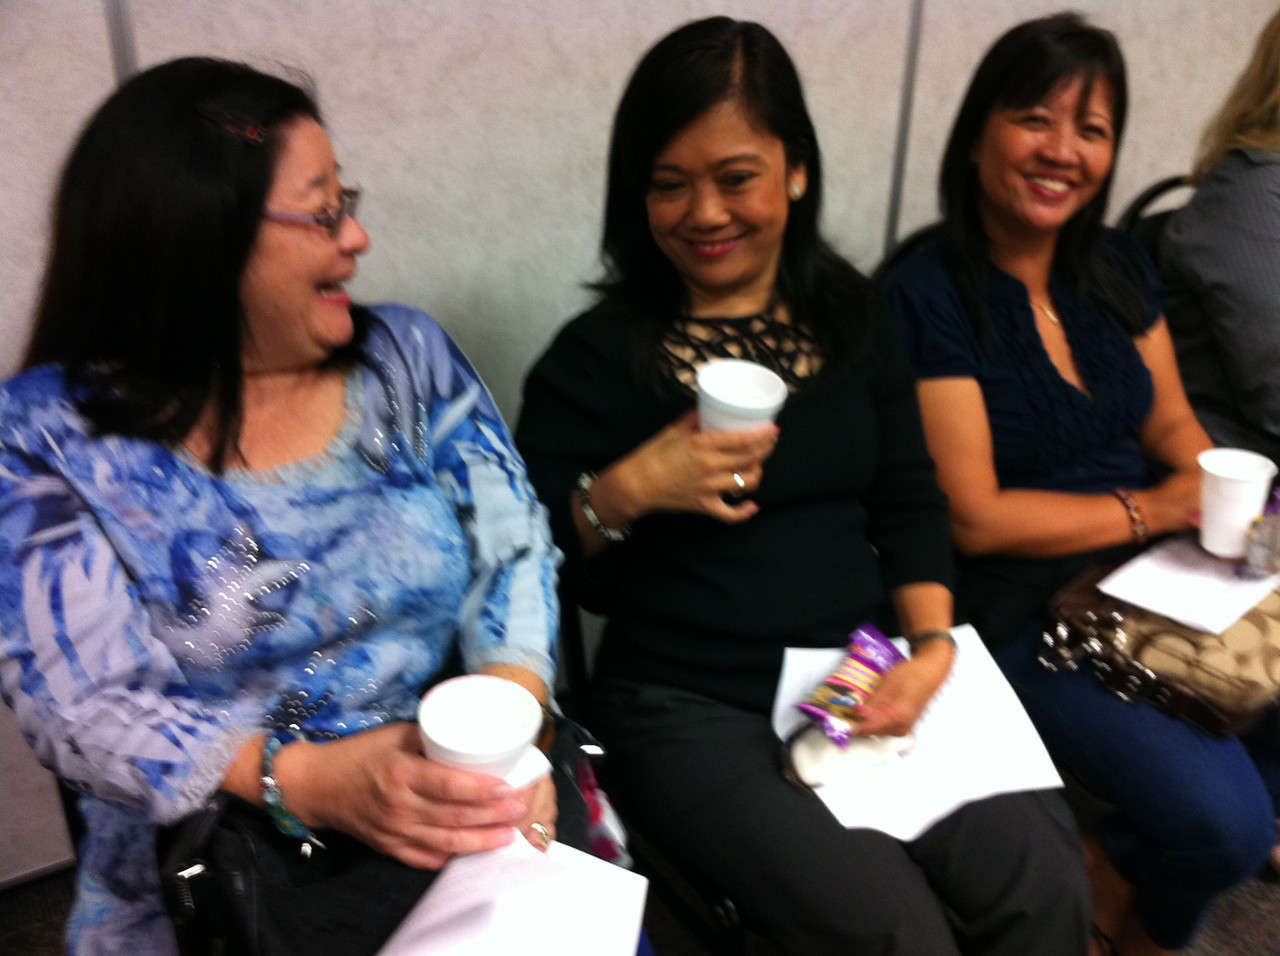 051012 at Homeland Security Seminar, about importance of SARS report.